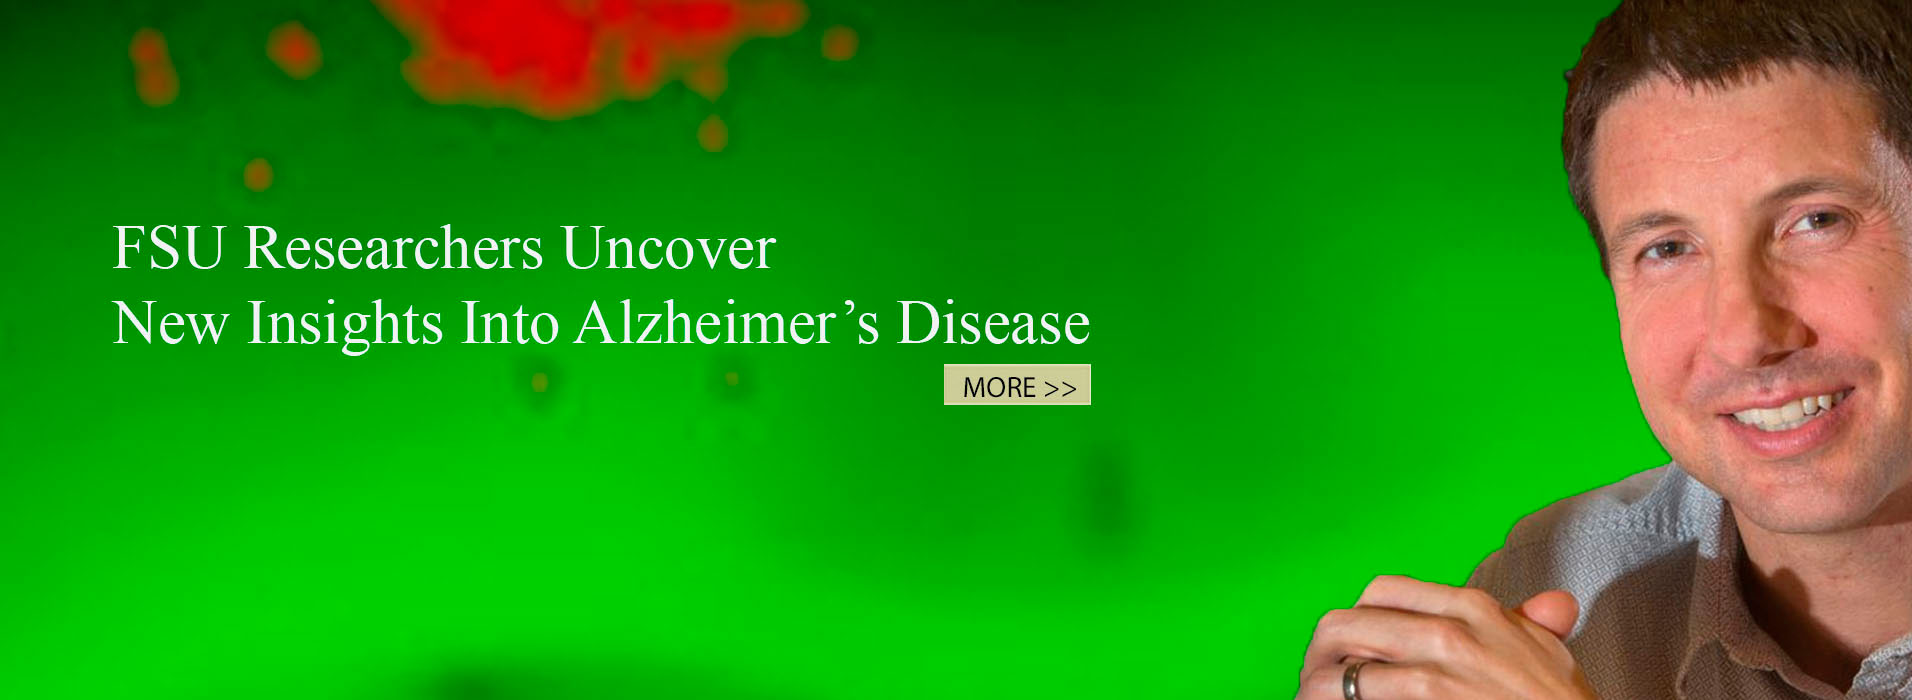 FSU Researchers Uncover New Insights Into Alzheimer's Disease